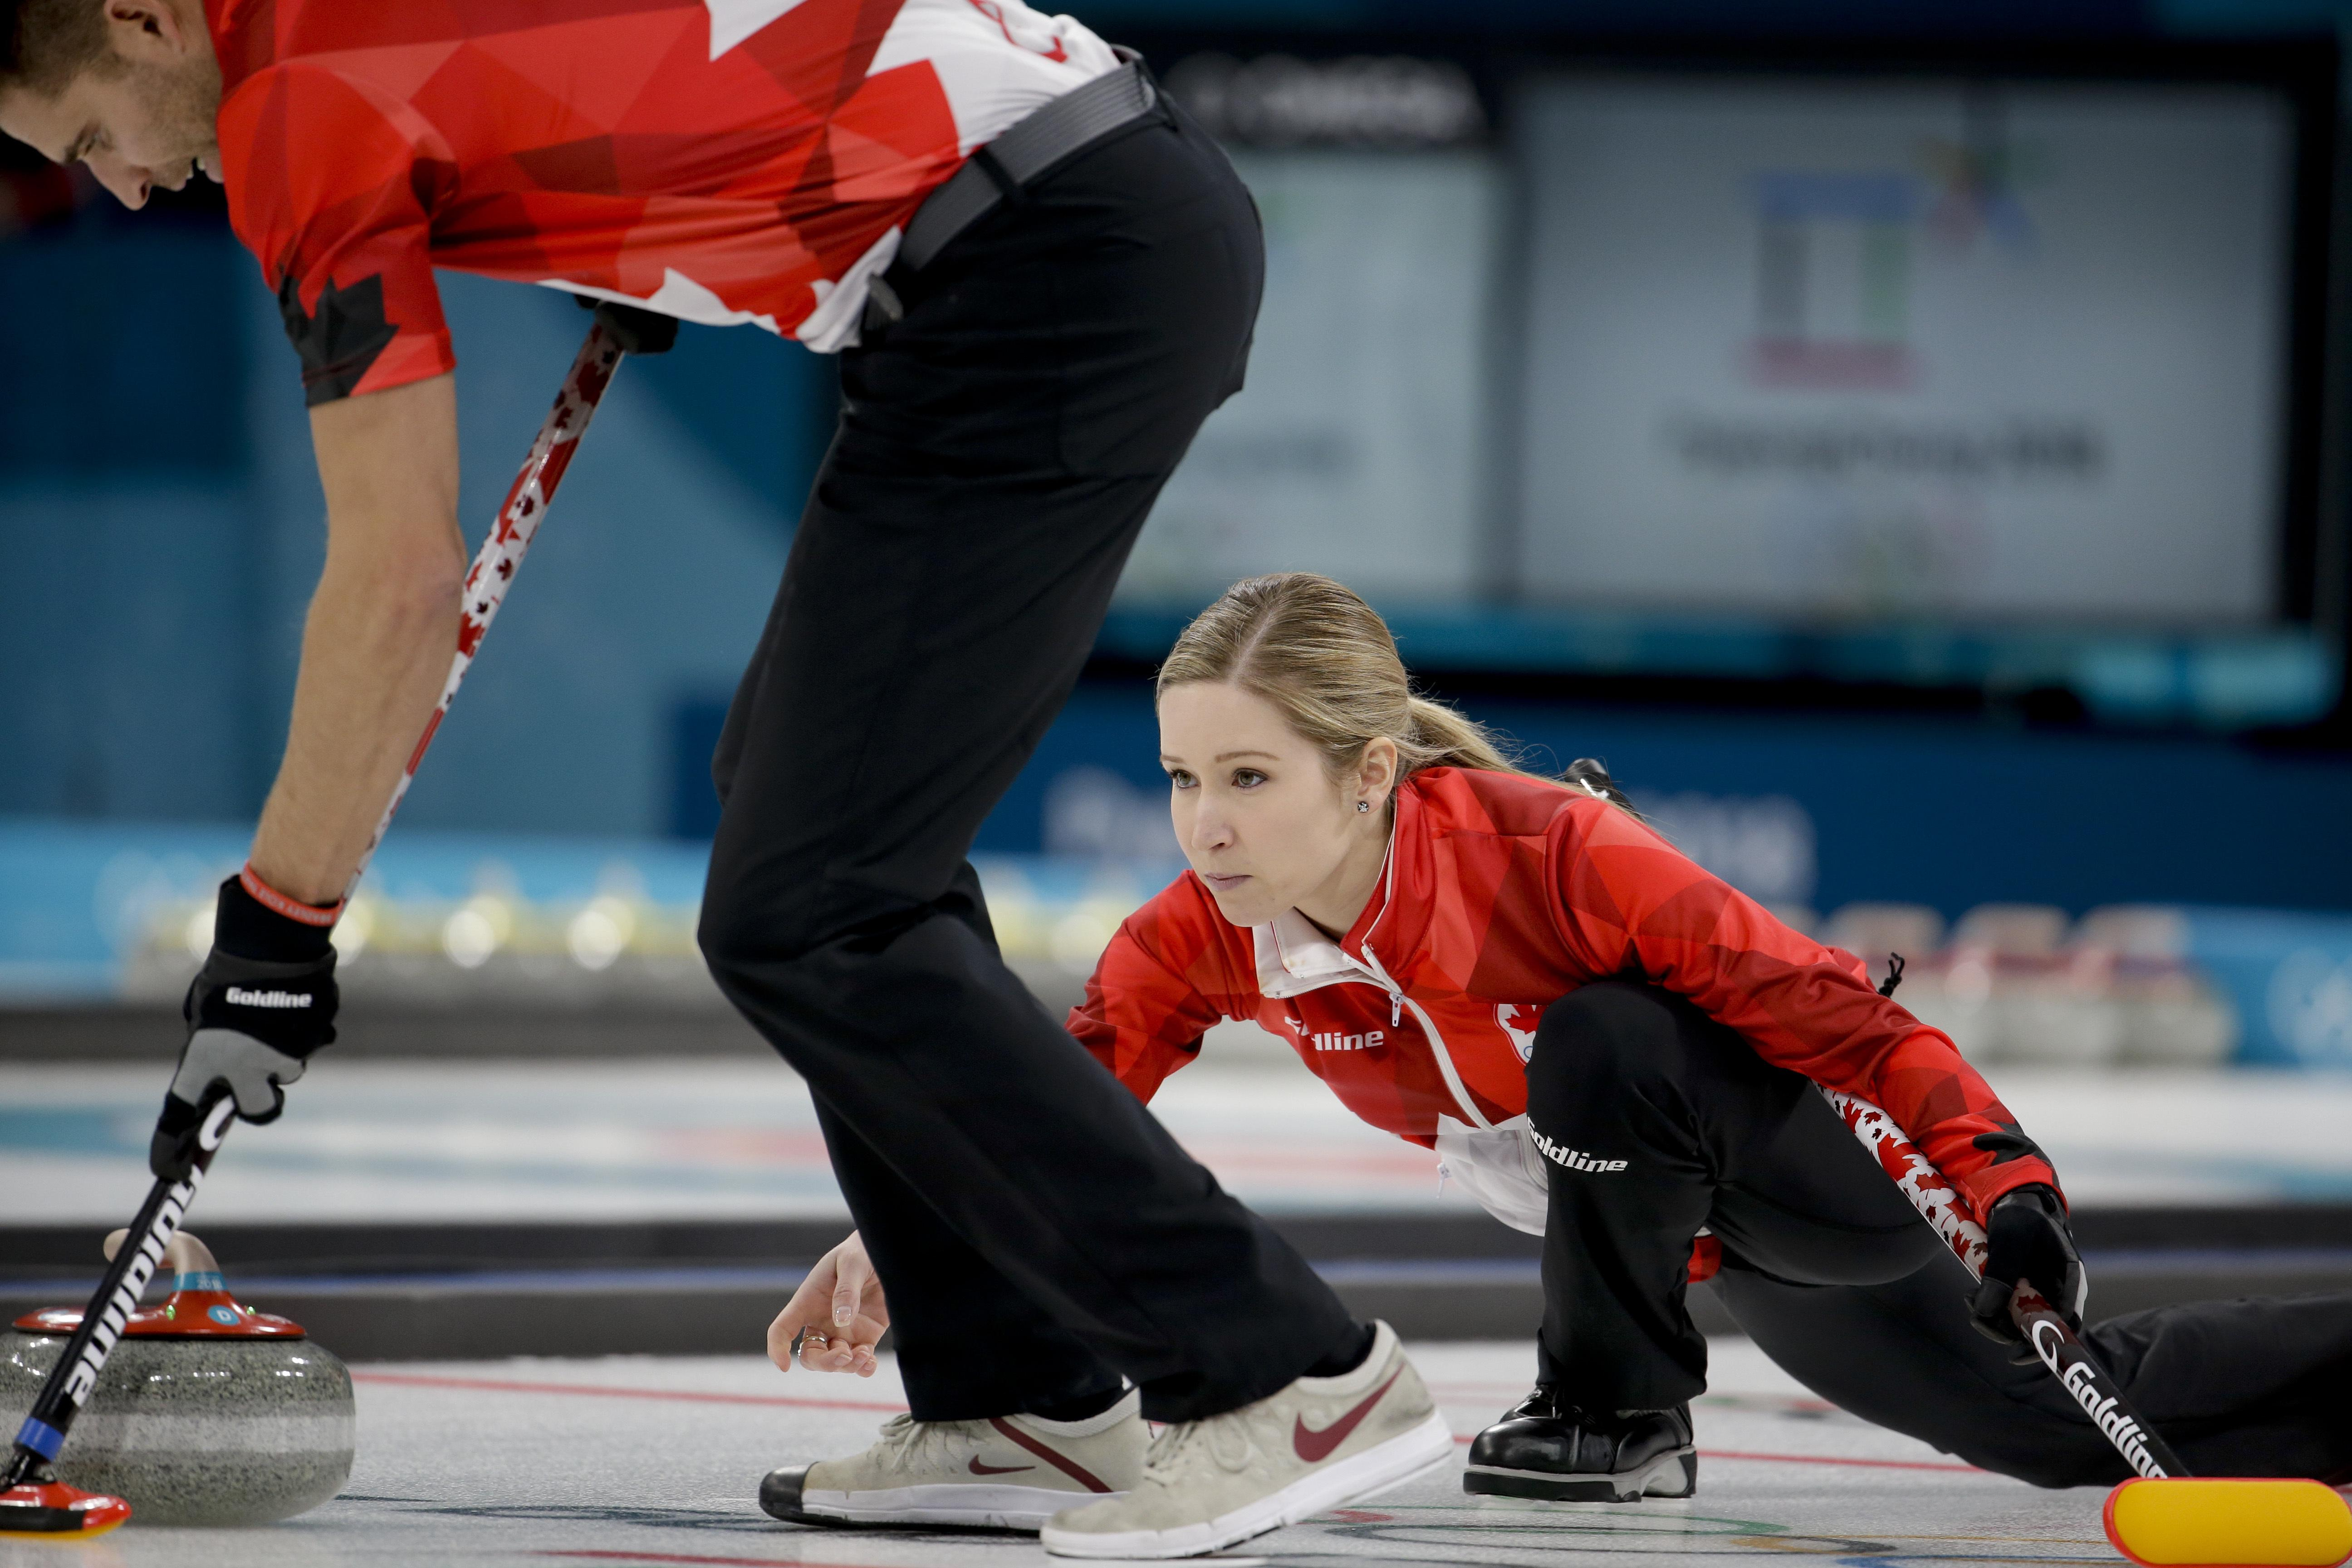 Canada wins 1st Olympic gold in curling mixed doubles